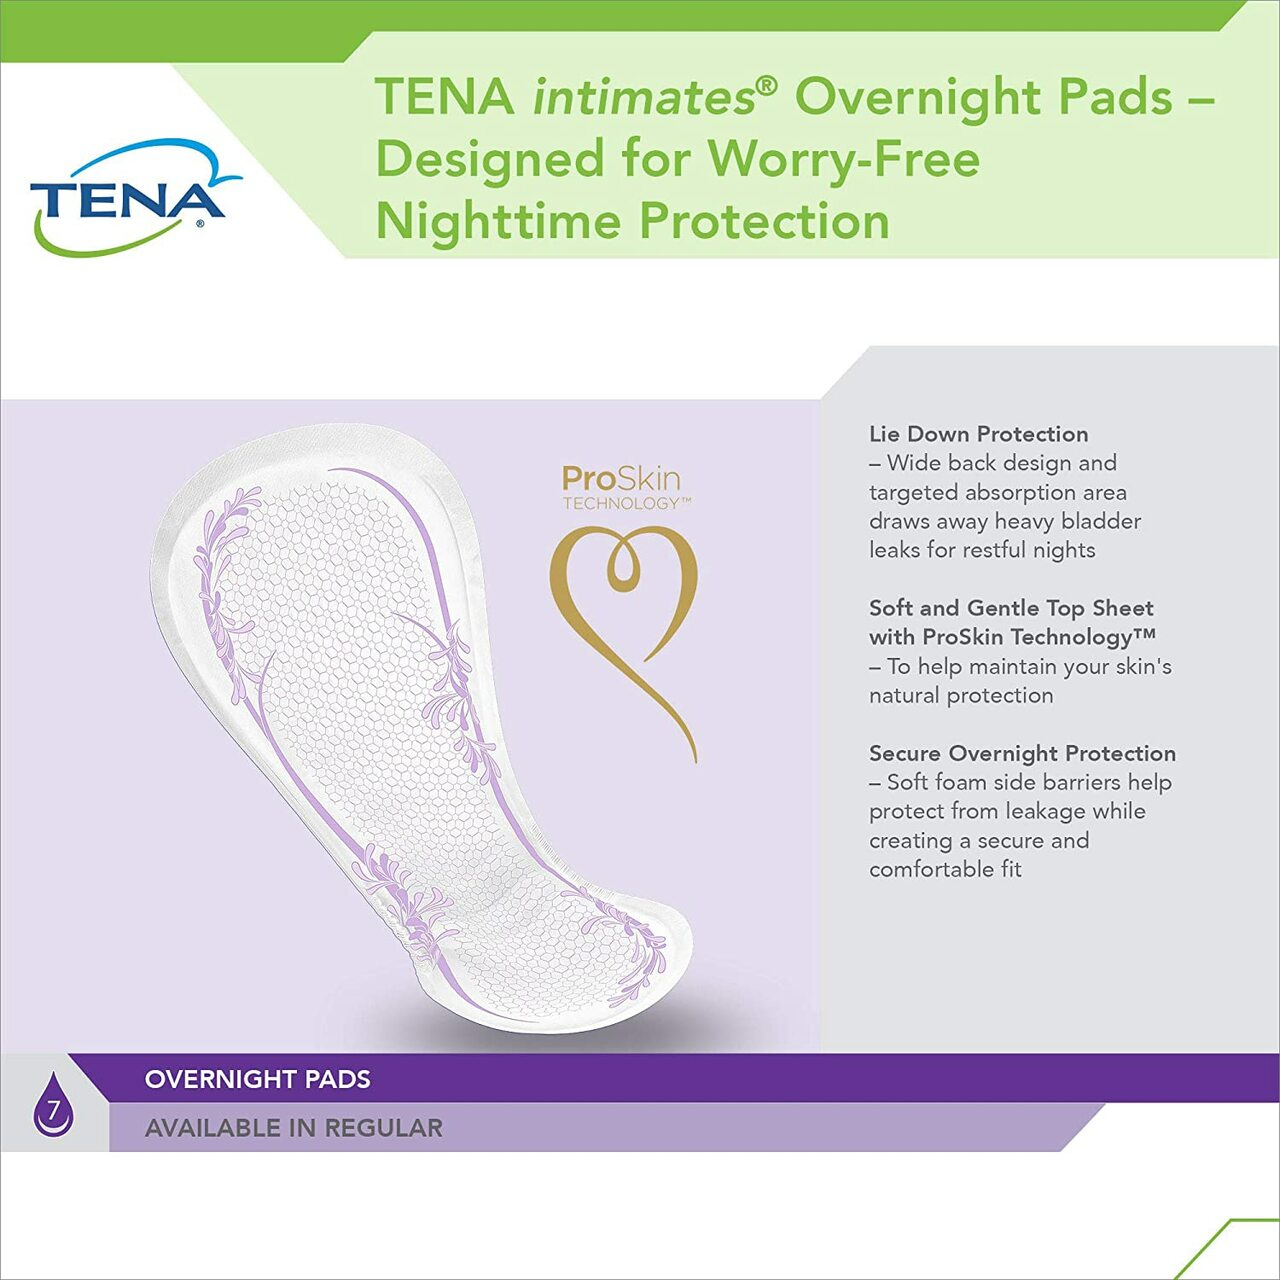 tena intimates overnight pads product specifications